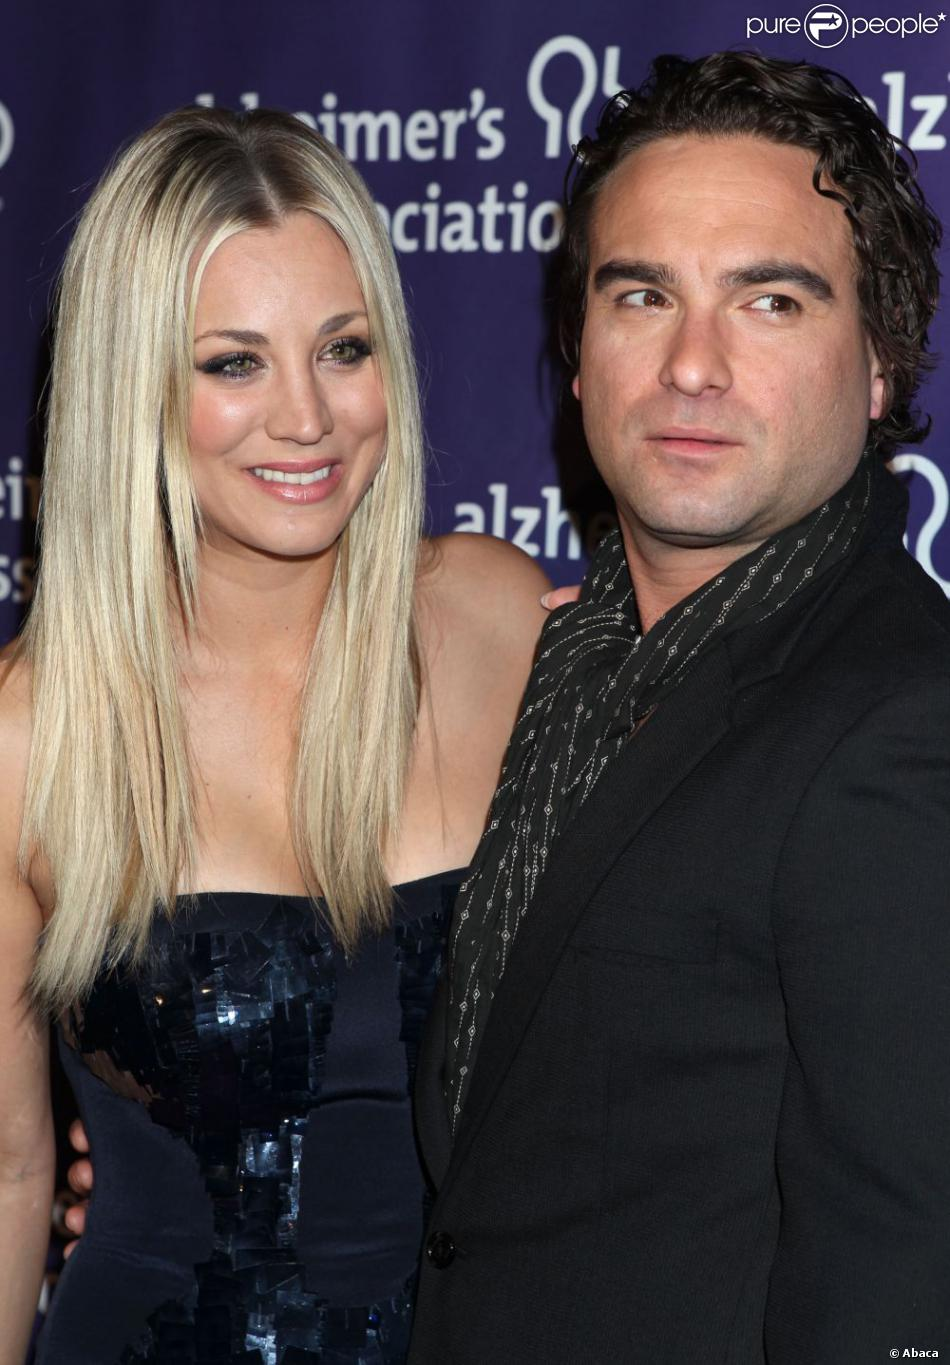 Johnny galecki and kaley cuoco dating in real life for pinterest